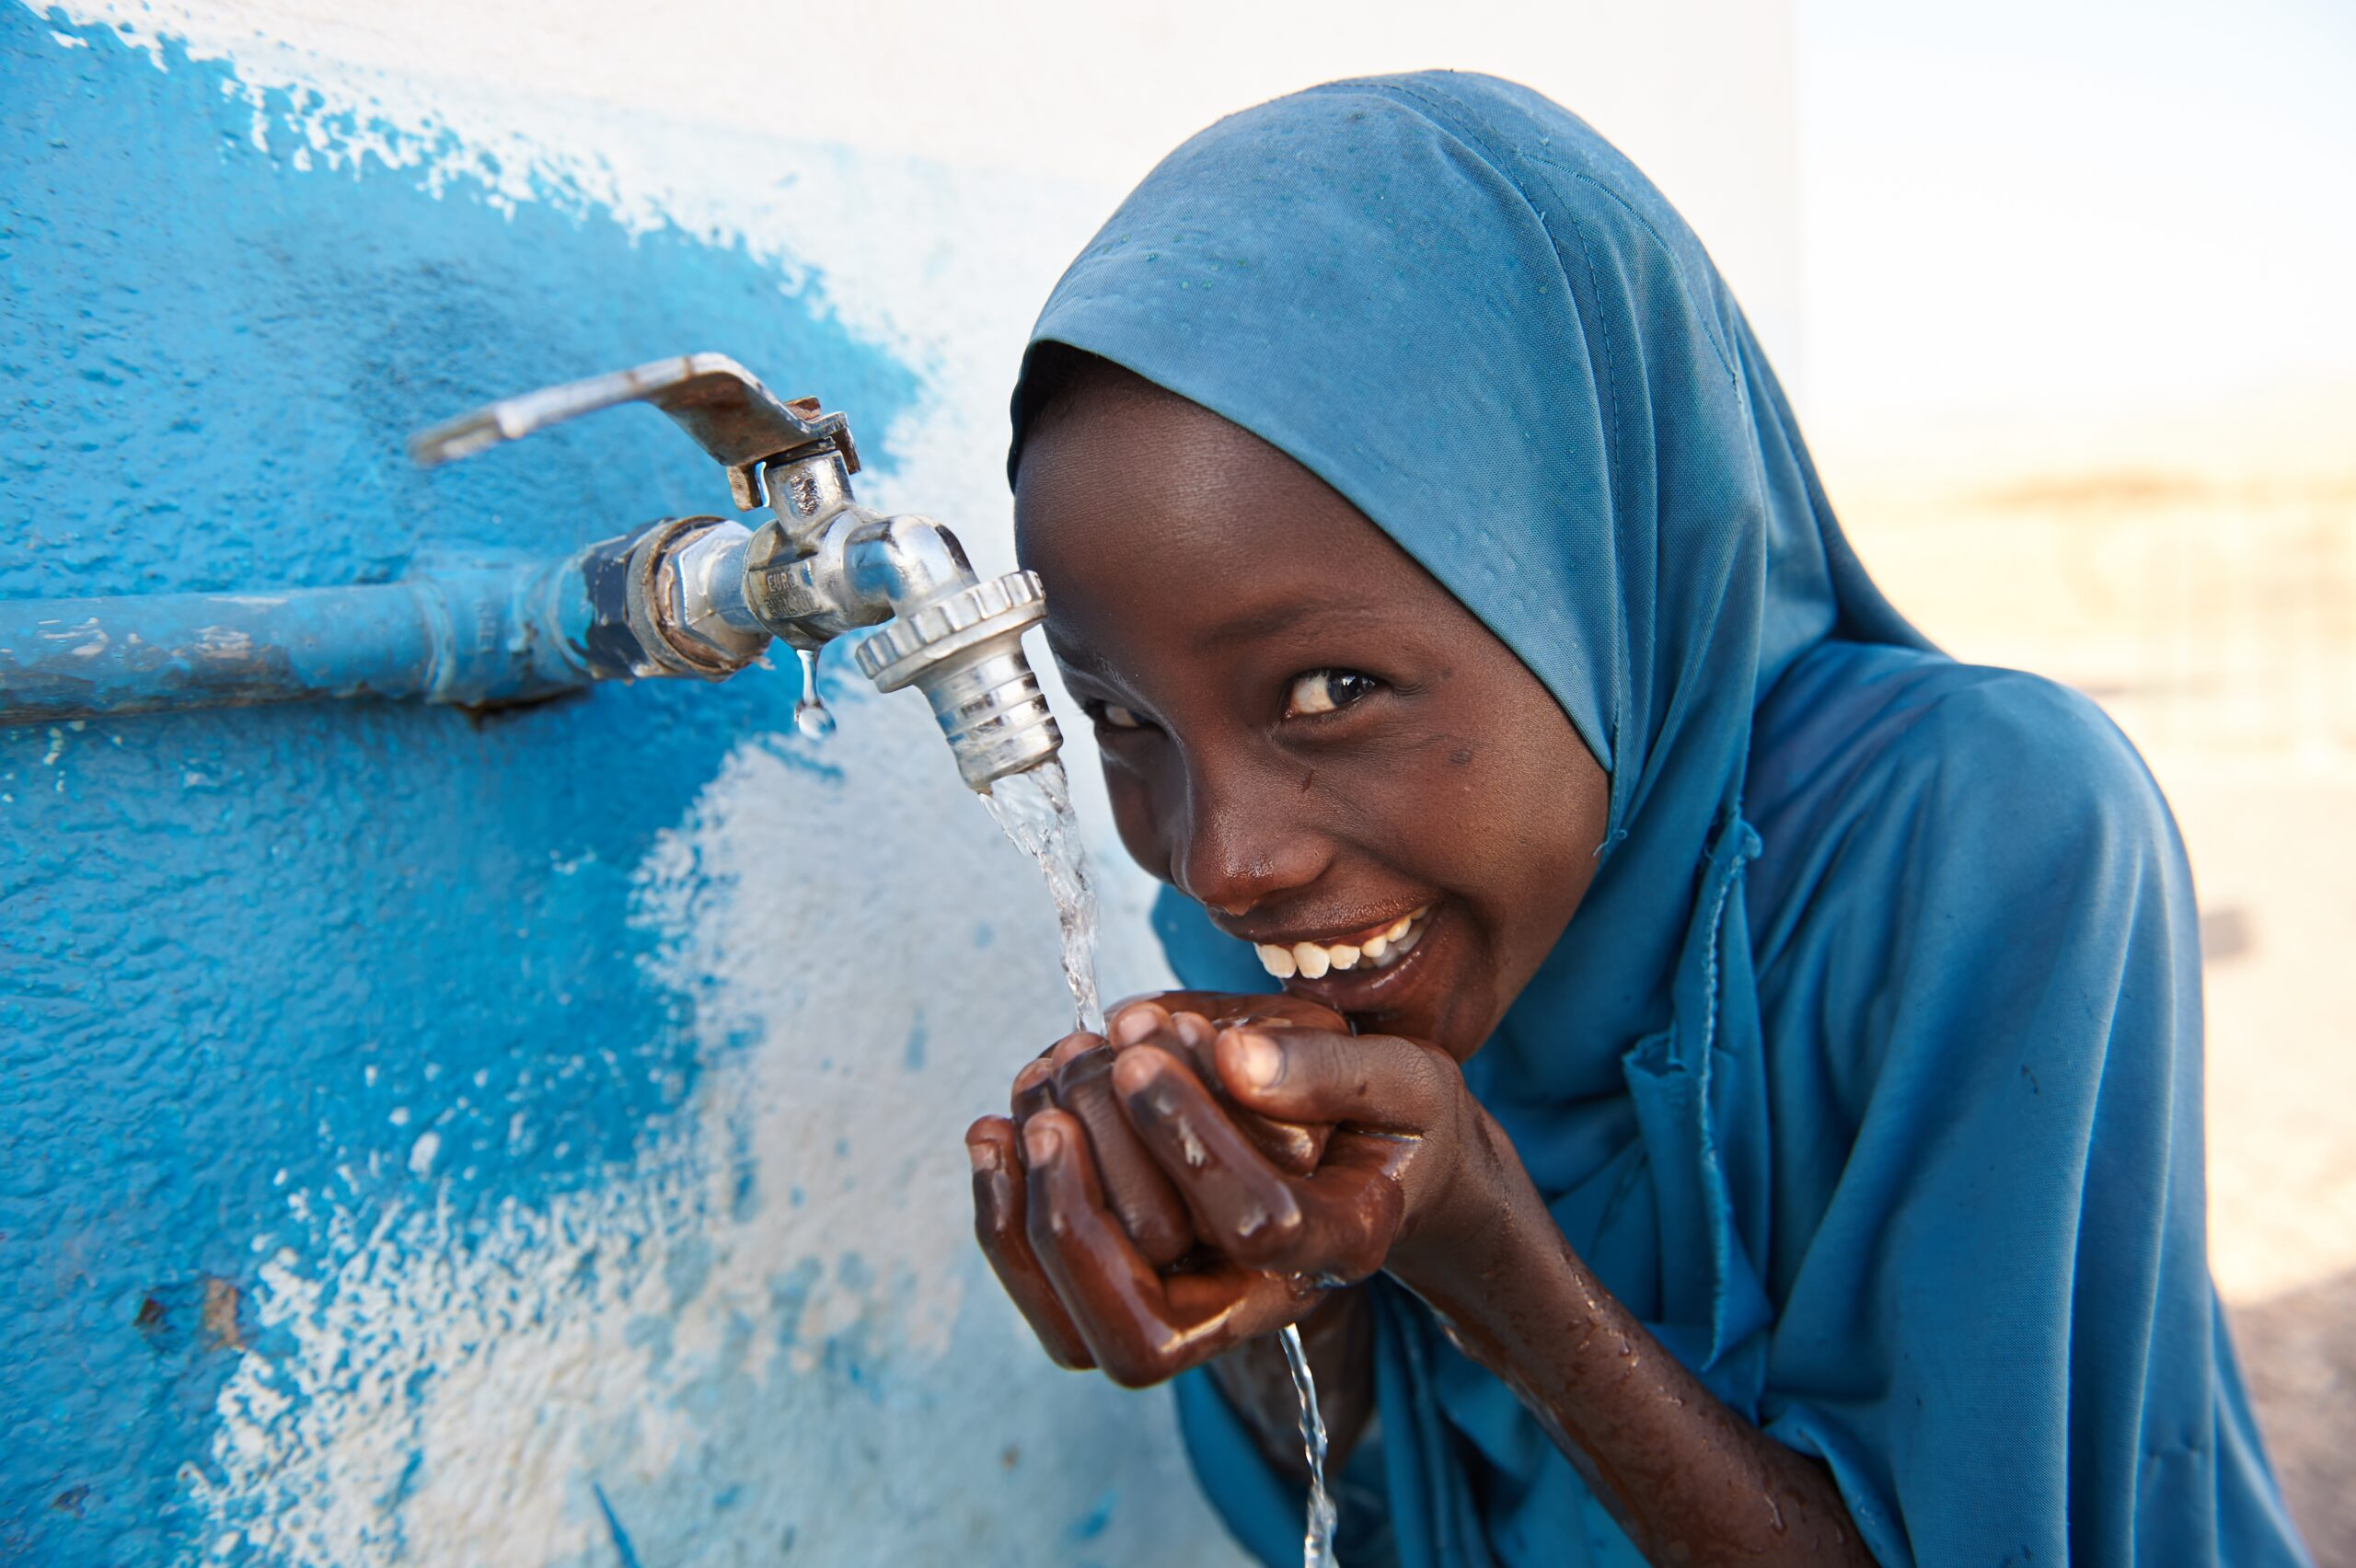 MARCH 22 WORLD WATER DAY